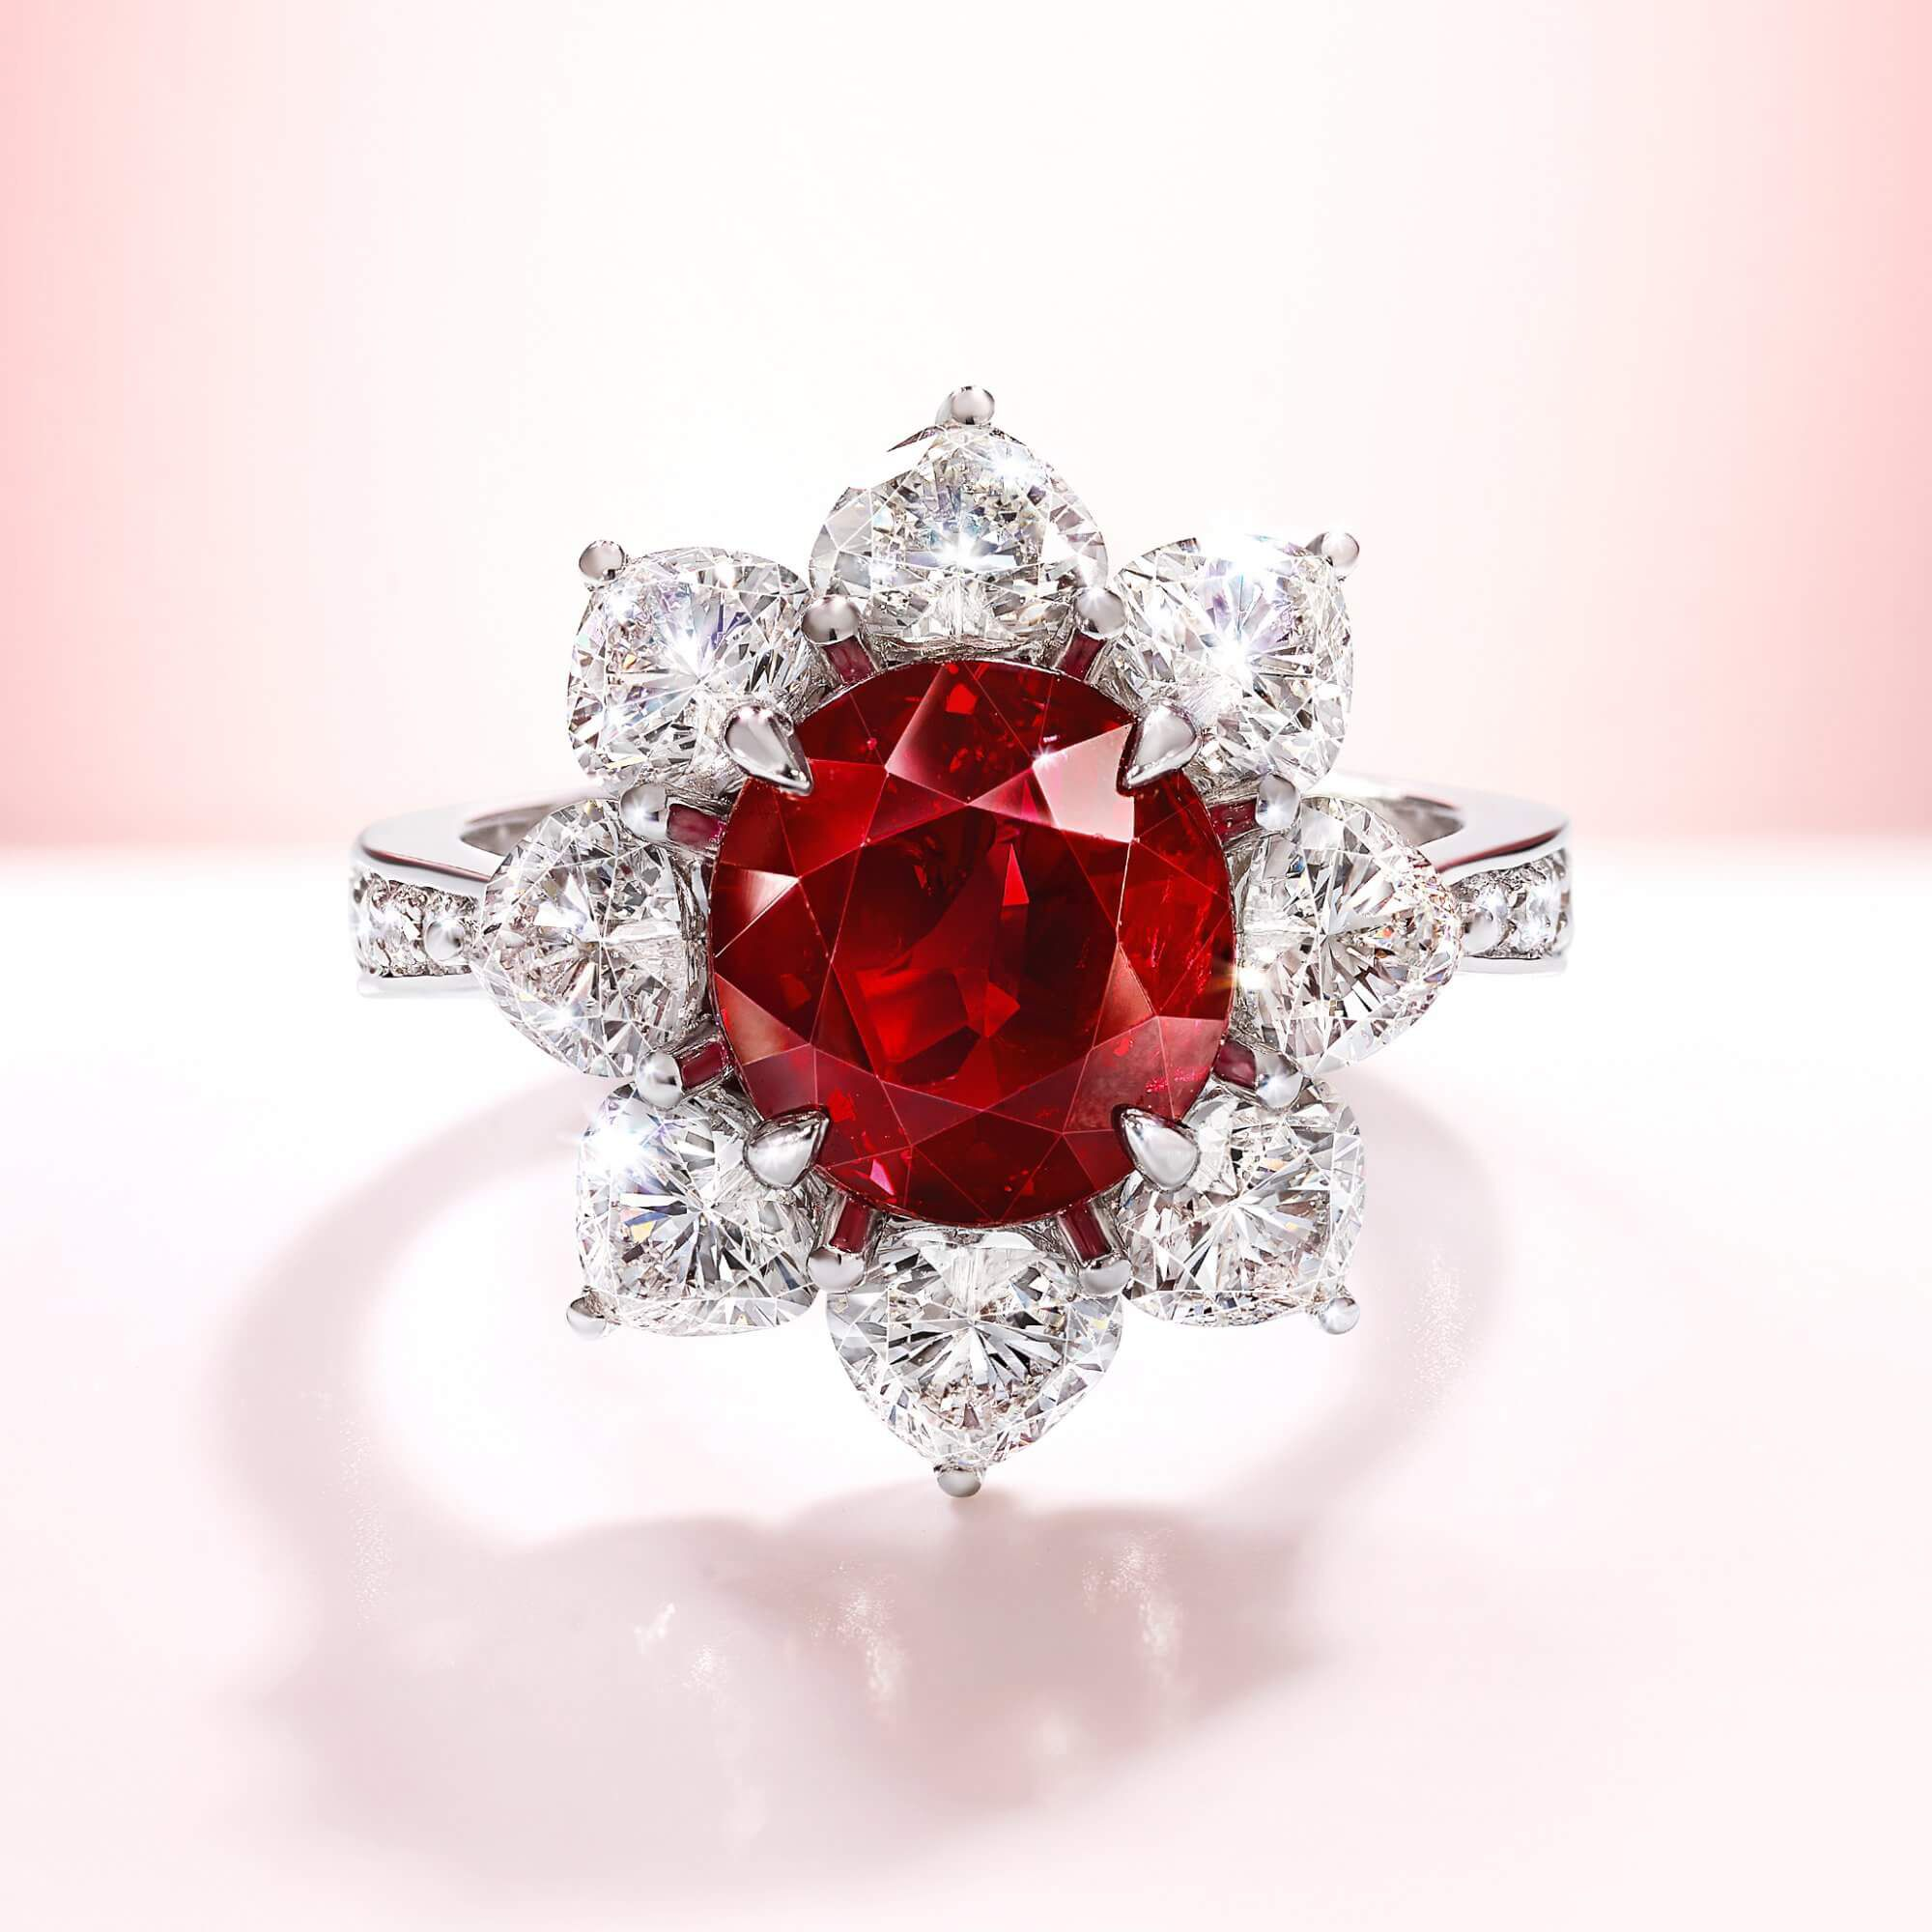 4 ct Oval Burmese Graff Ruby and diamond ring